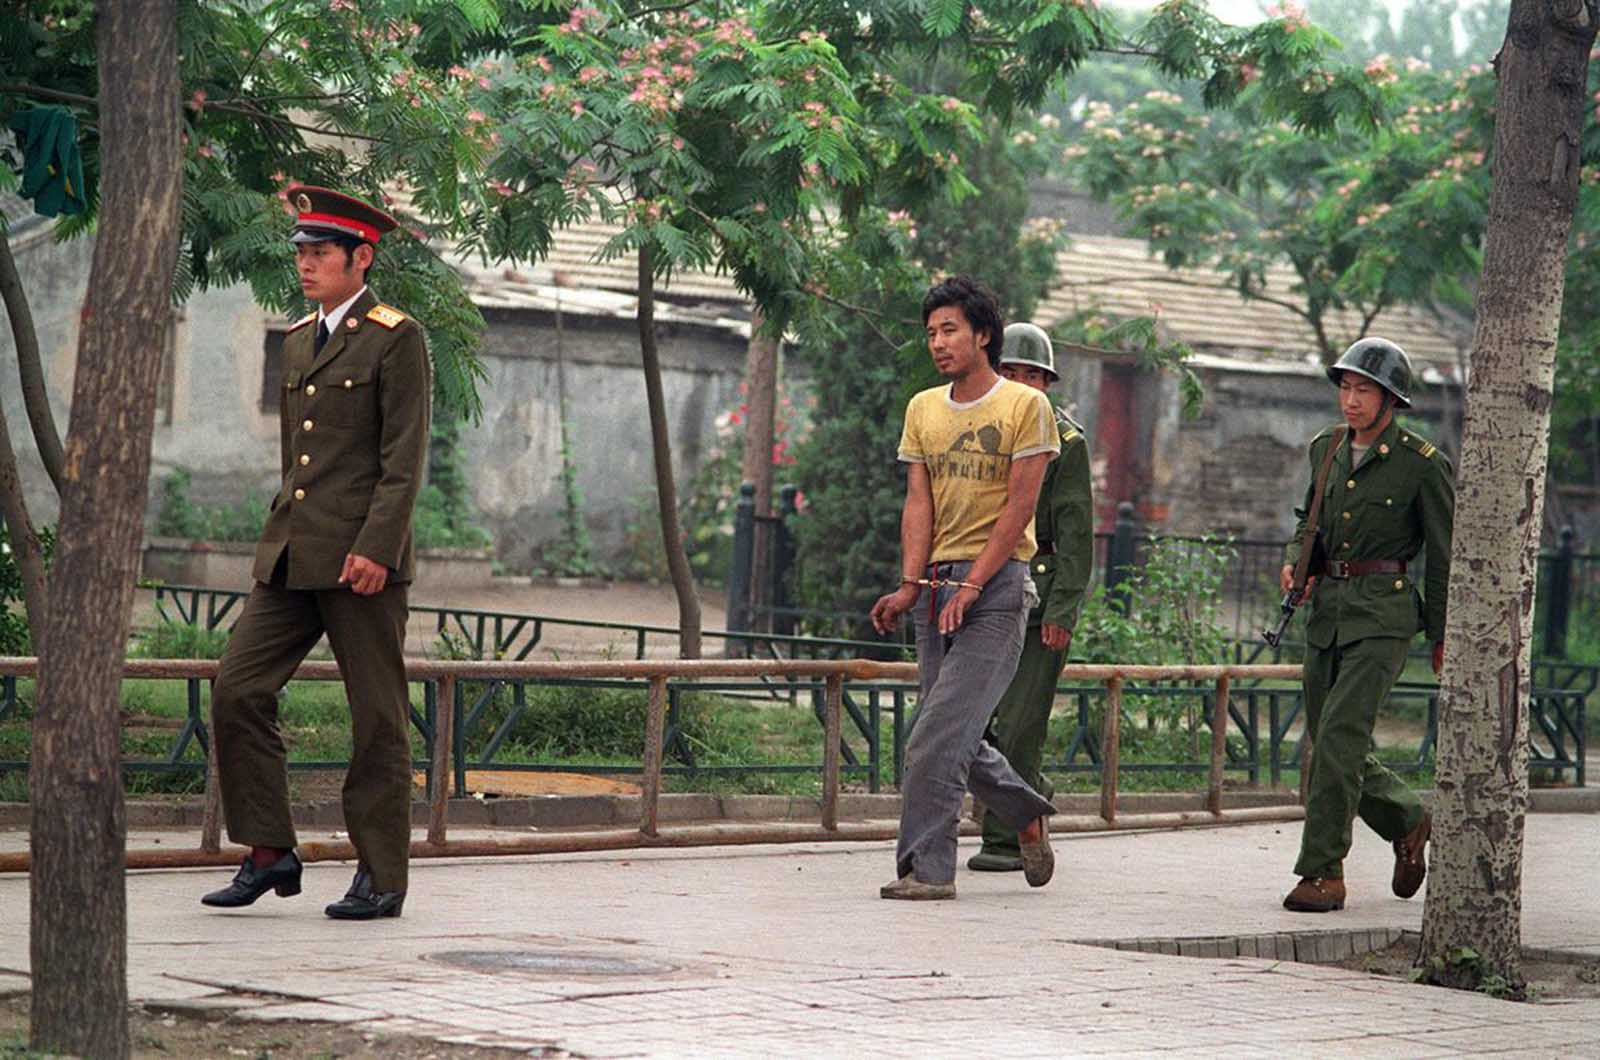 A handcuffed man is led by Chinese soldiers on a street in Beijing, in June of 1989, as police and soldiers searched for people involved in the April-June pro-democracy protests.